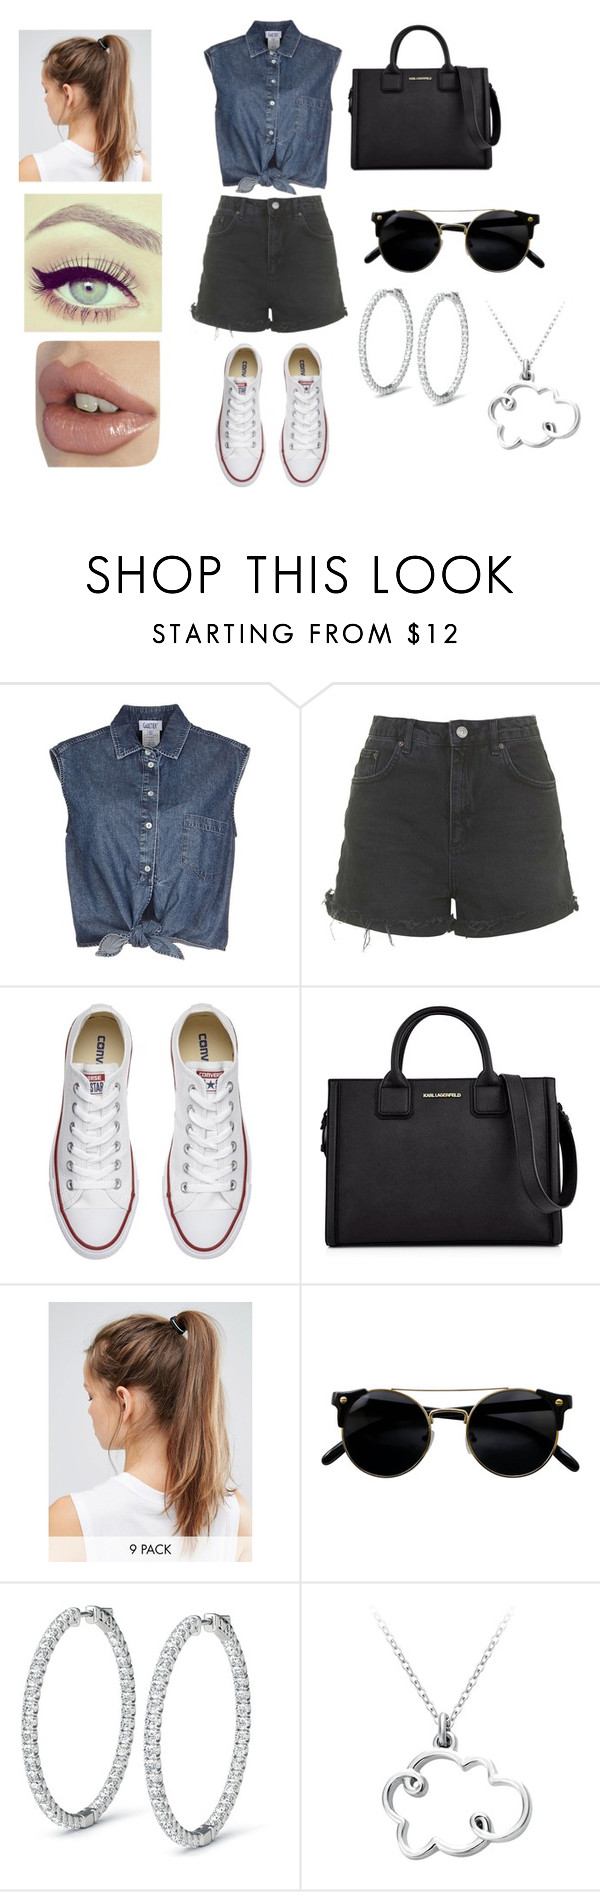 """Untitled #79"" by arilo1205 ❤ liked on Polyvore featuring Jean-Paul Gaultier, Topshop, Converse, Karl Lagerfeld and NIKE"